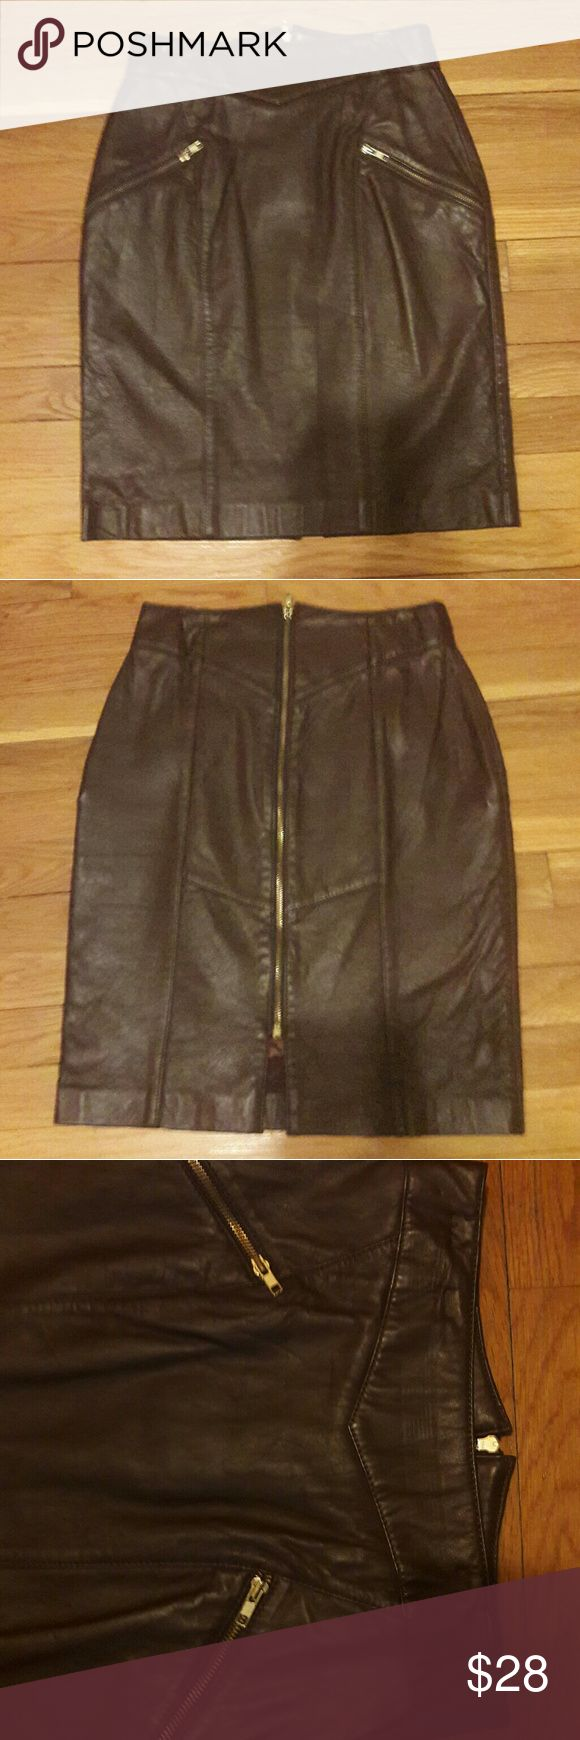 """Vintage buttery leather skirt zip coffee color This is a soft, beautifully fluid vintage leather skirt with a sexy full back zip.  I am selling a lot of leather skirts, but this one is the cream of the crop - the leather is thicker, lush, clearly higher quality than the others.  Fully lined with two slant zip pockets.  Label says simply """"Claudel."""" Measurements: waist 26"""", length 21"""".  Rough estimate womens size 2-4. There are some small indentations on waist of skirt from previous owner…"""